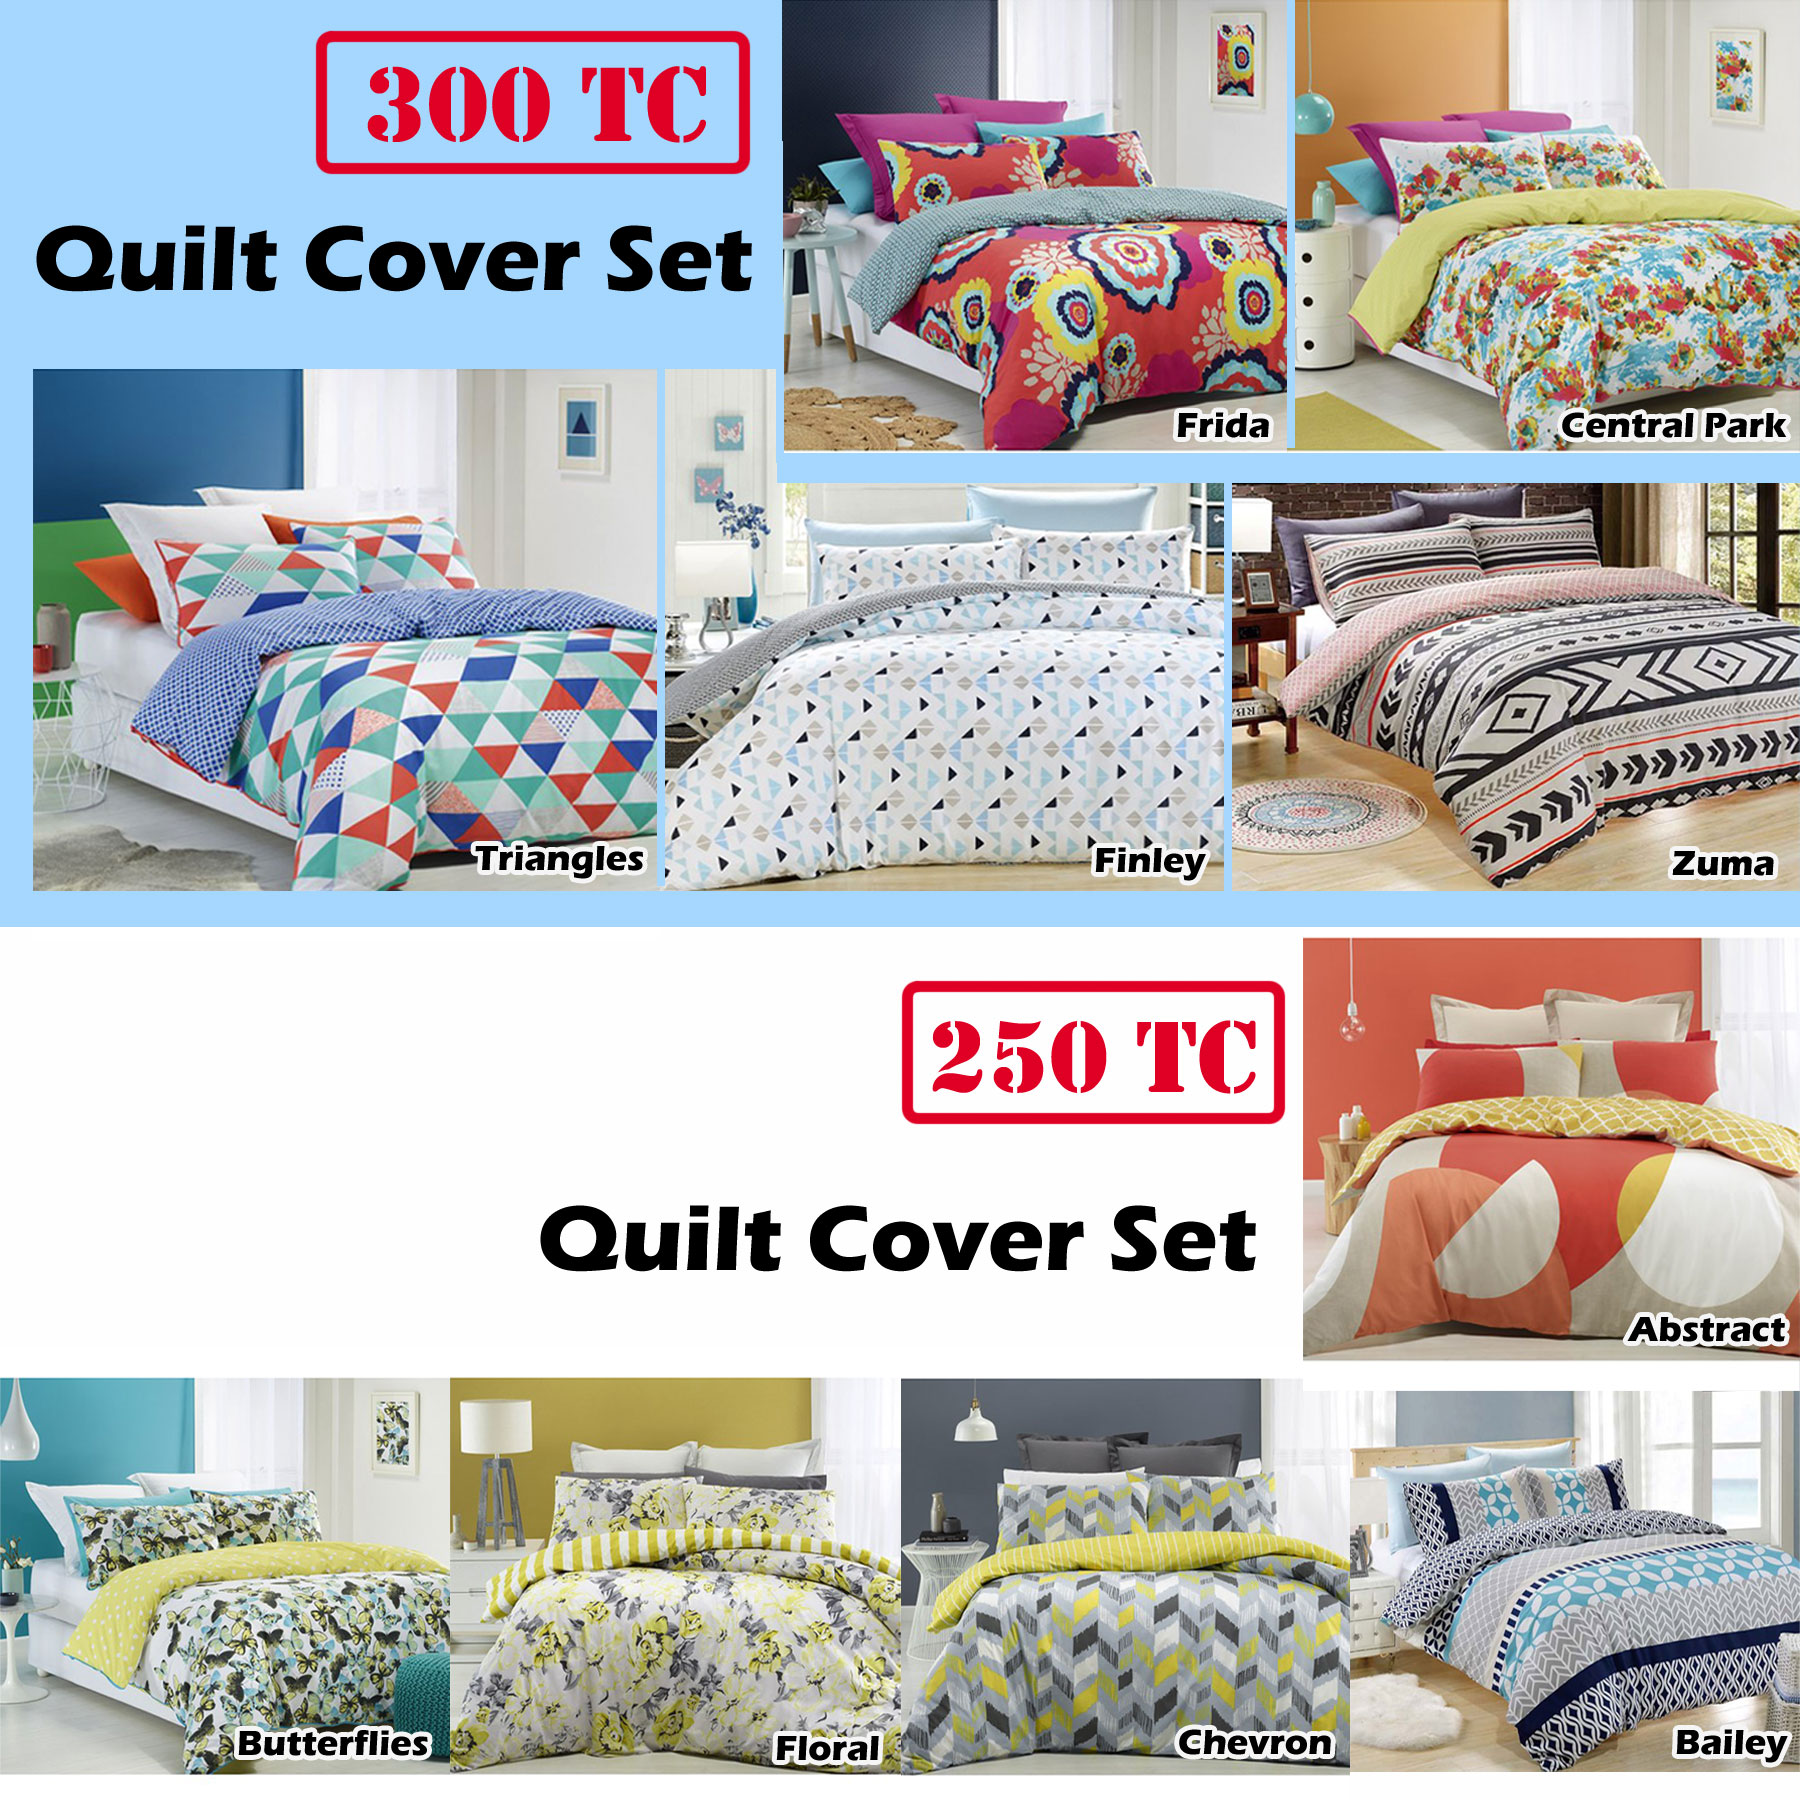 queen bedroom bedsheets natural cover minimalist twin duvet rough king linen cotton orkney covers products bedding interior